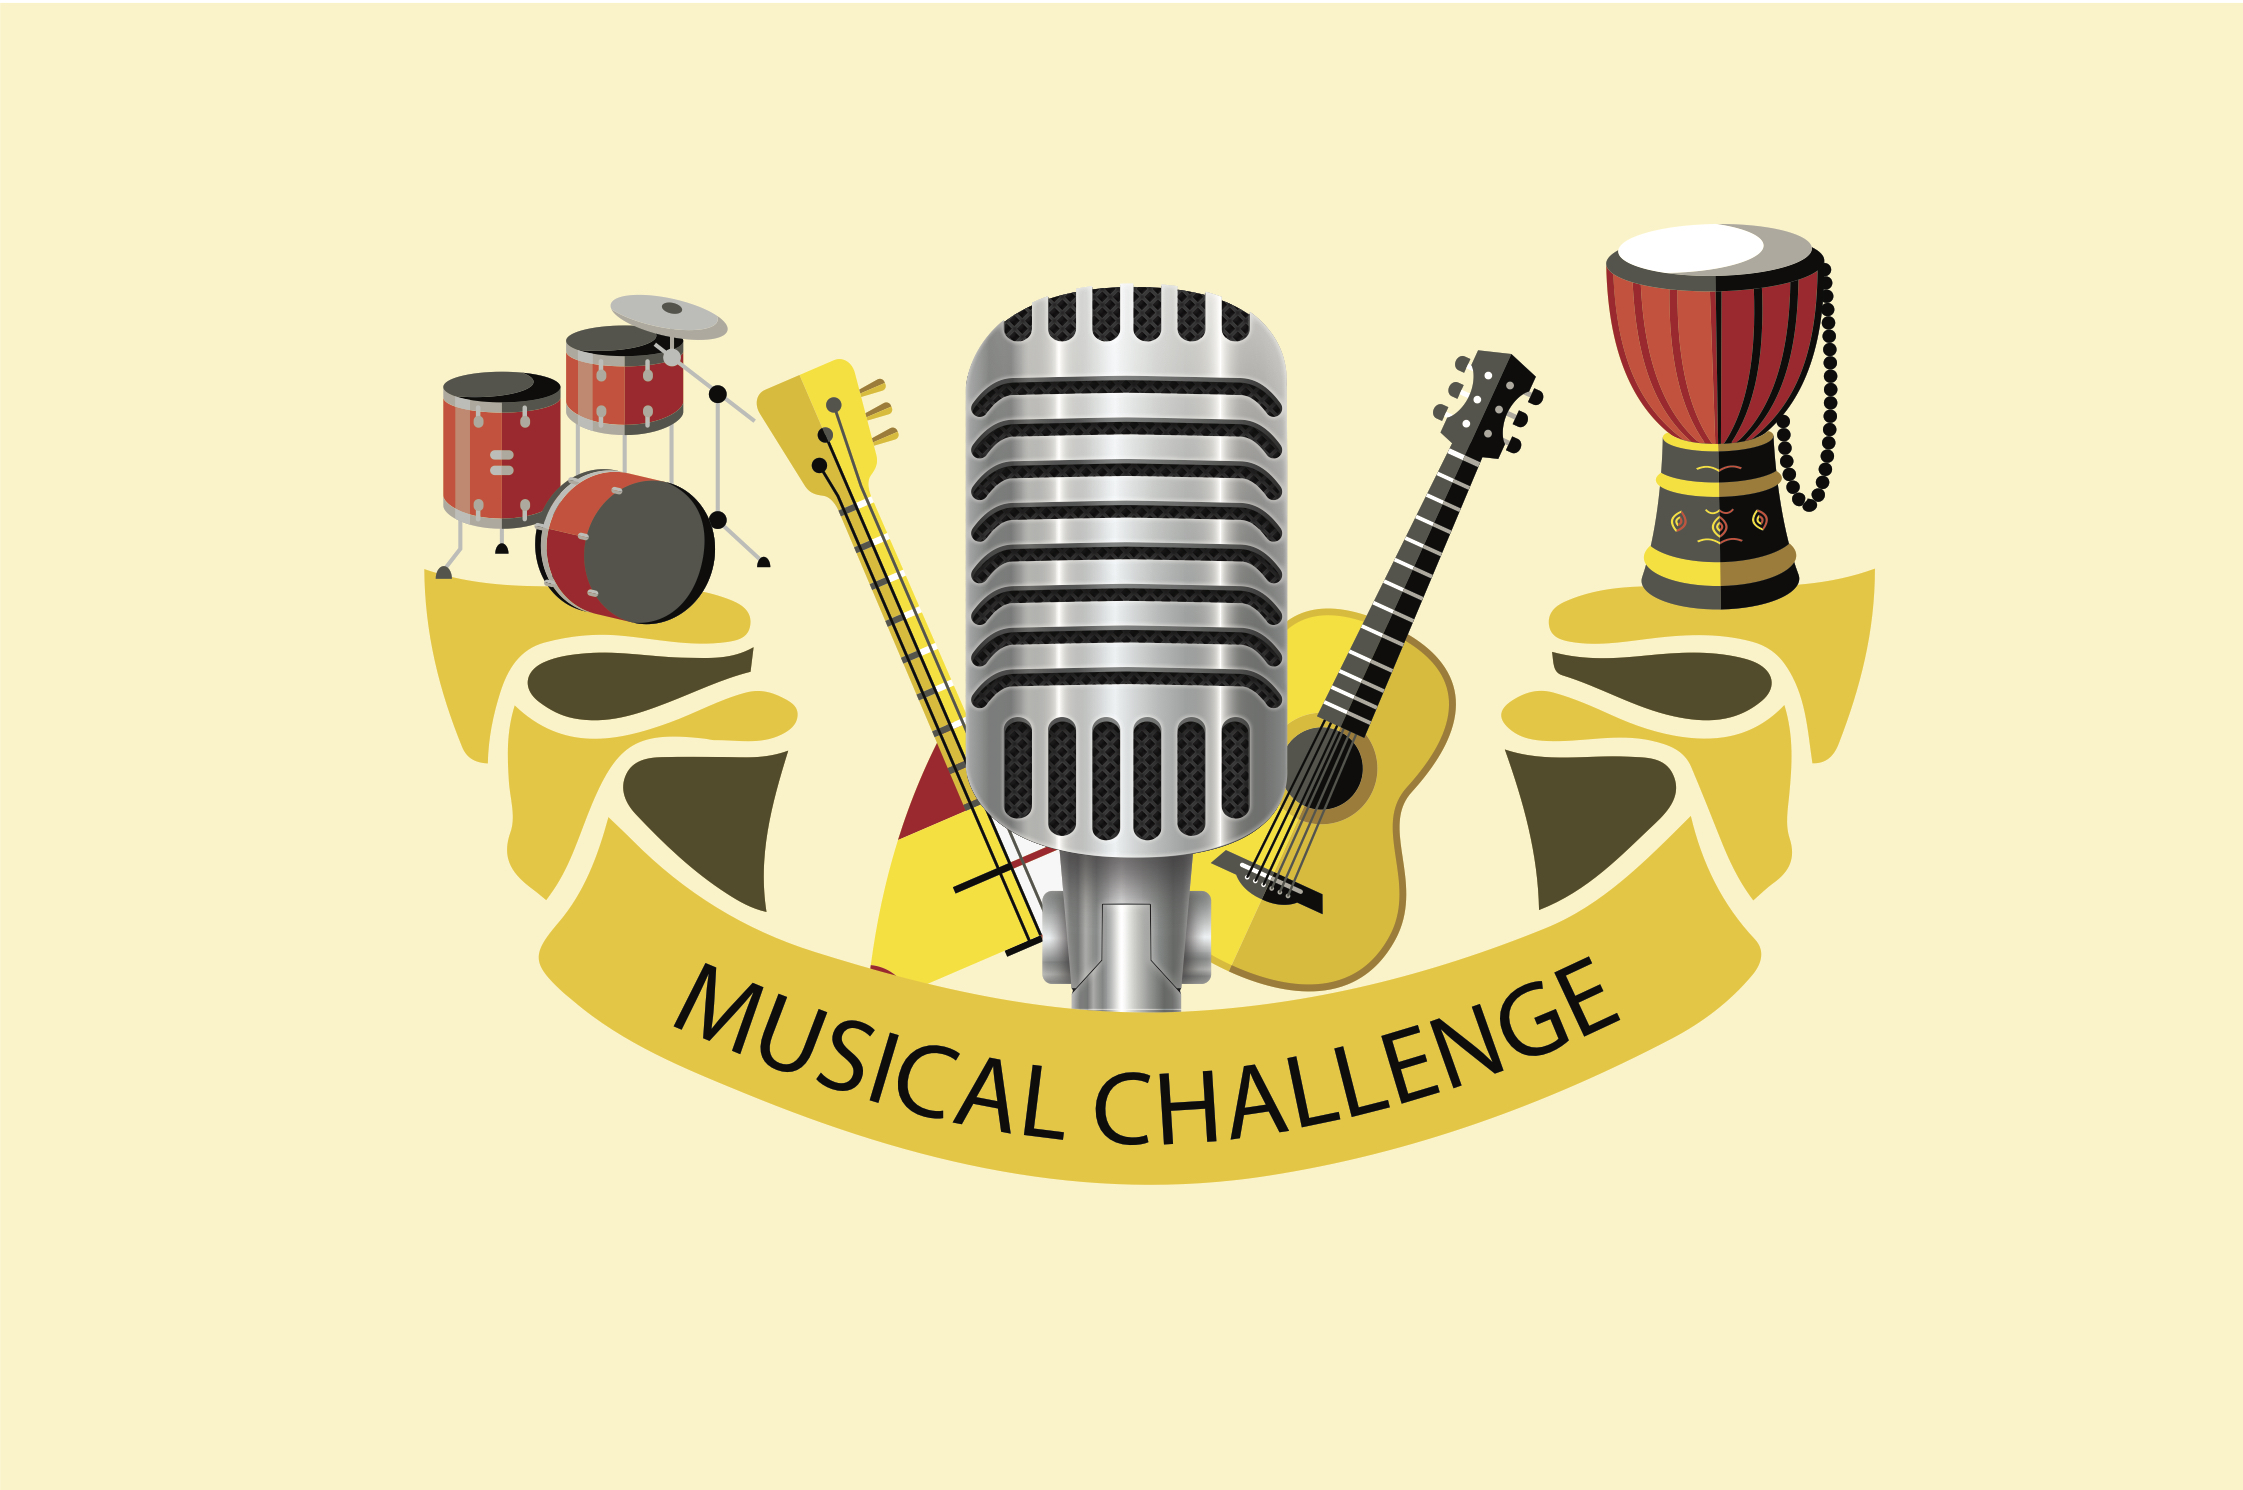 musical challenge